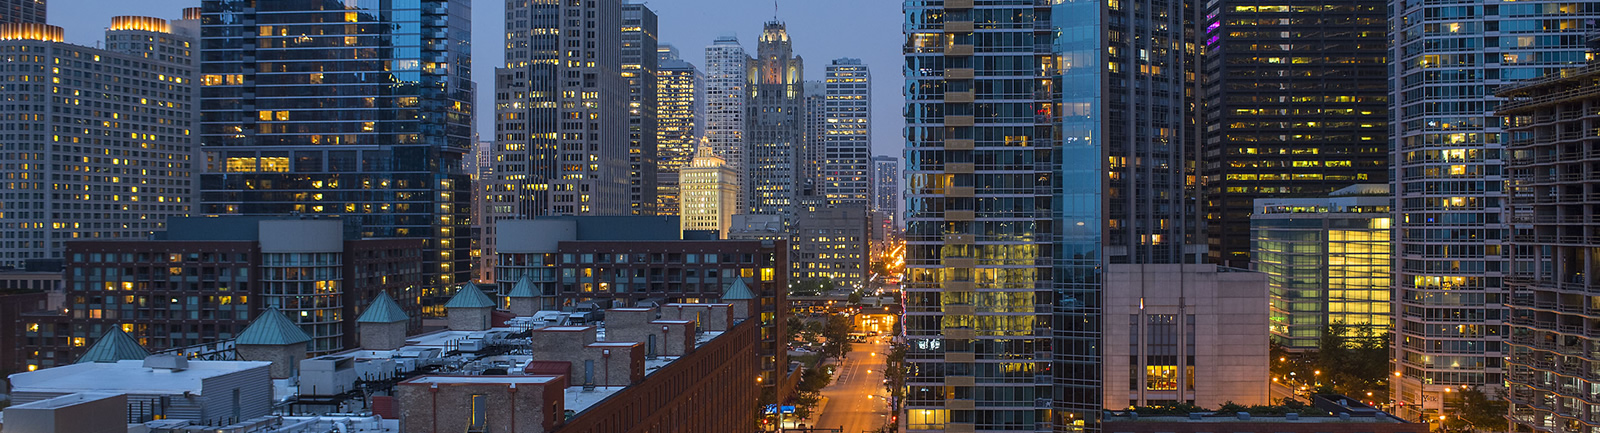 Night Time View of Chicago Buildings and Streets Downtown